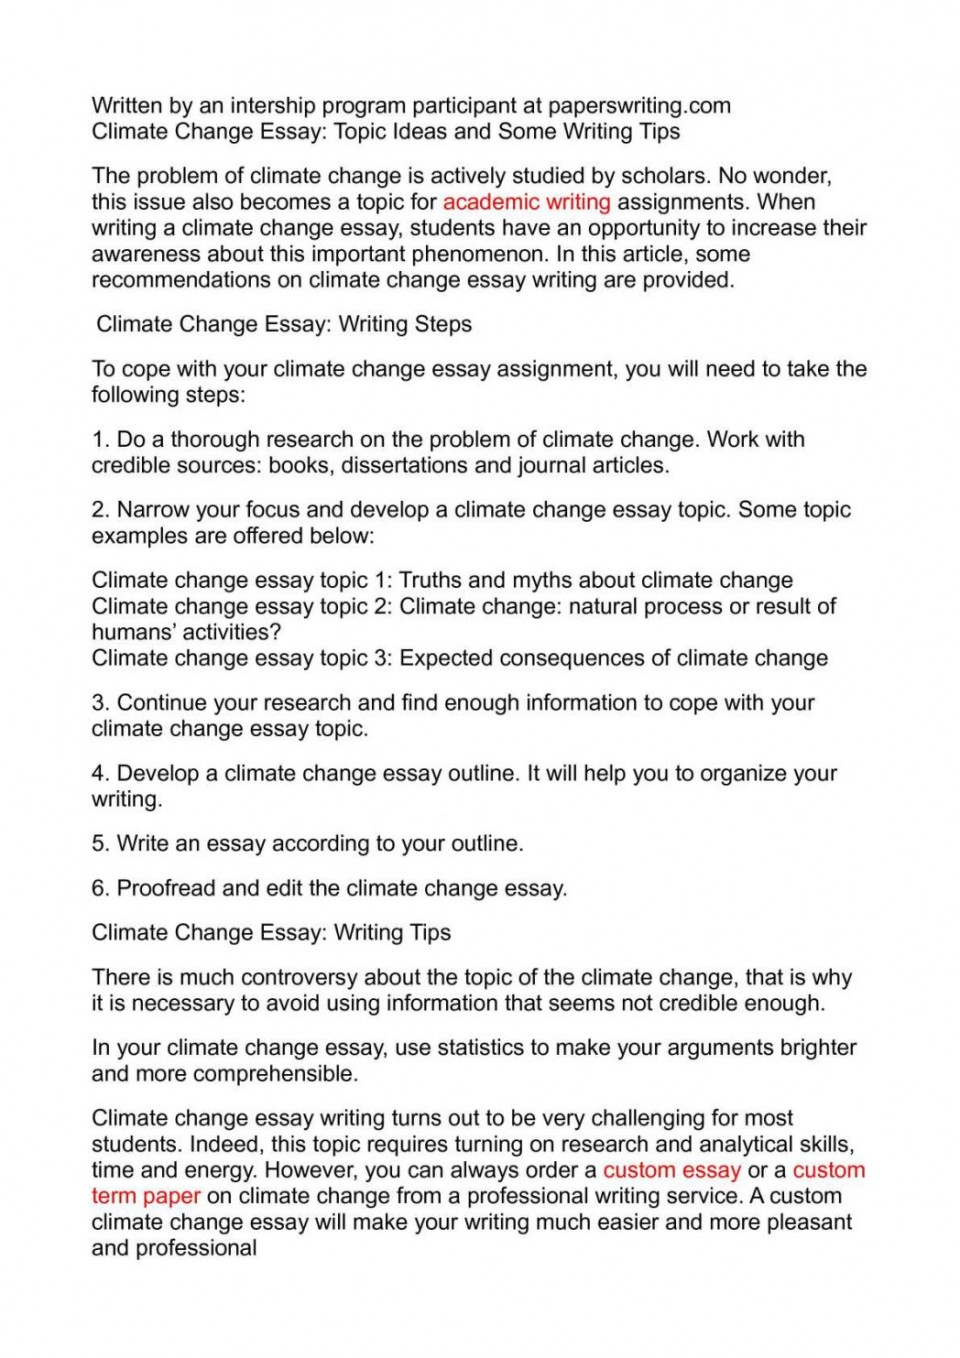 004 Global Climate Change Essay Warming And How To Write An Abo Argumentative On Persuasive Study Mode About Good Paper 1048x1483 Awesome High School In English 150 Words Kenya Art Competition 2018 960